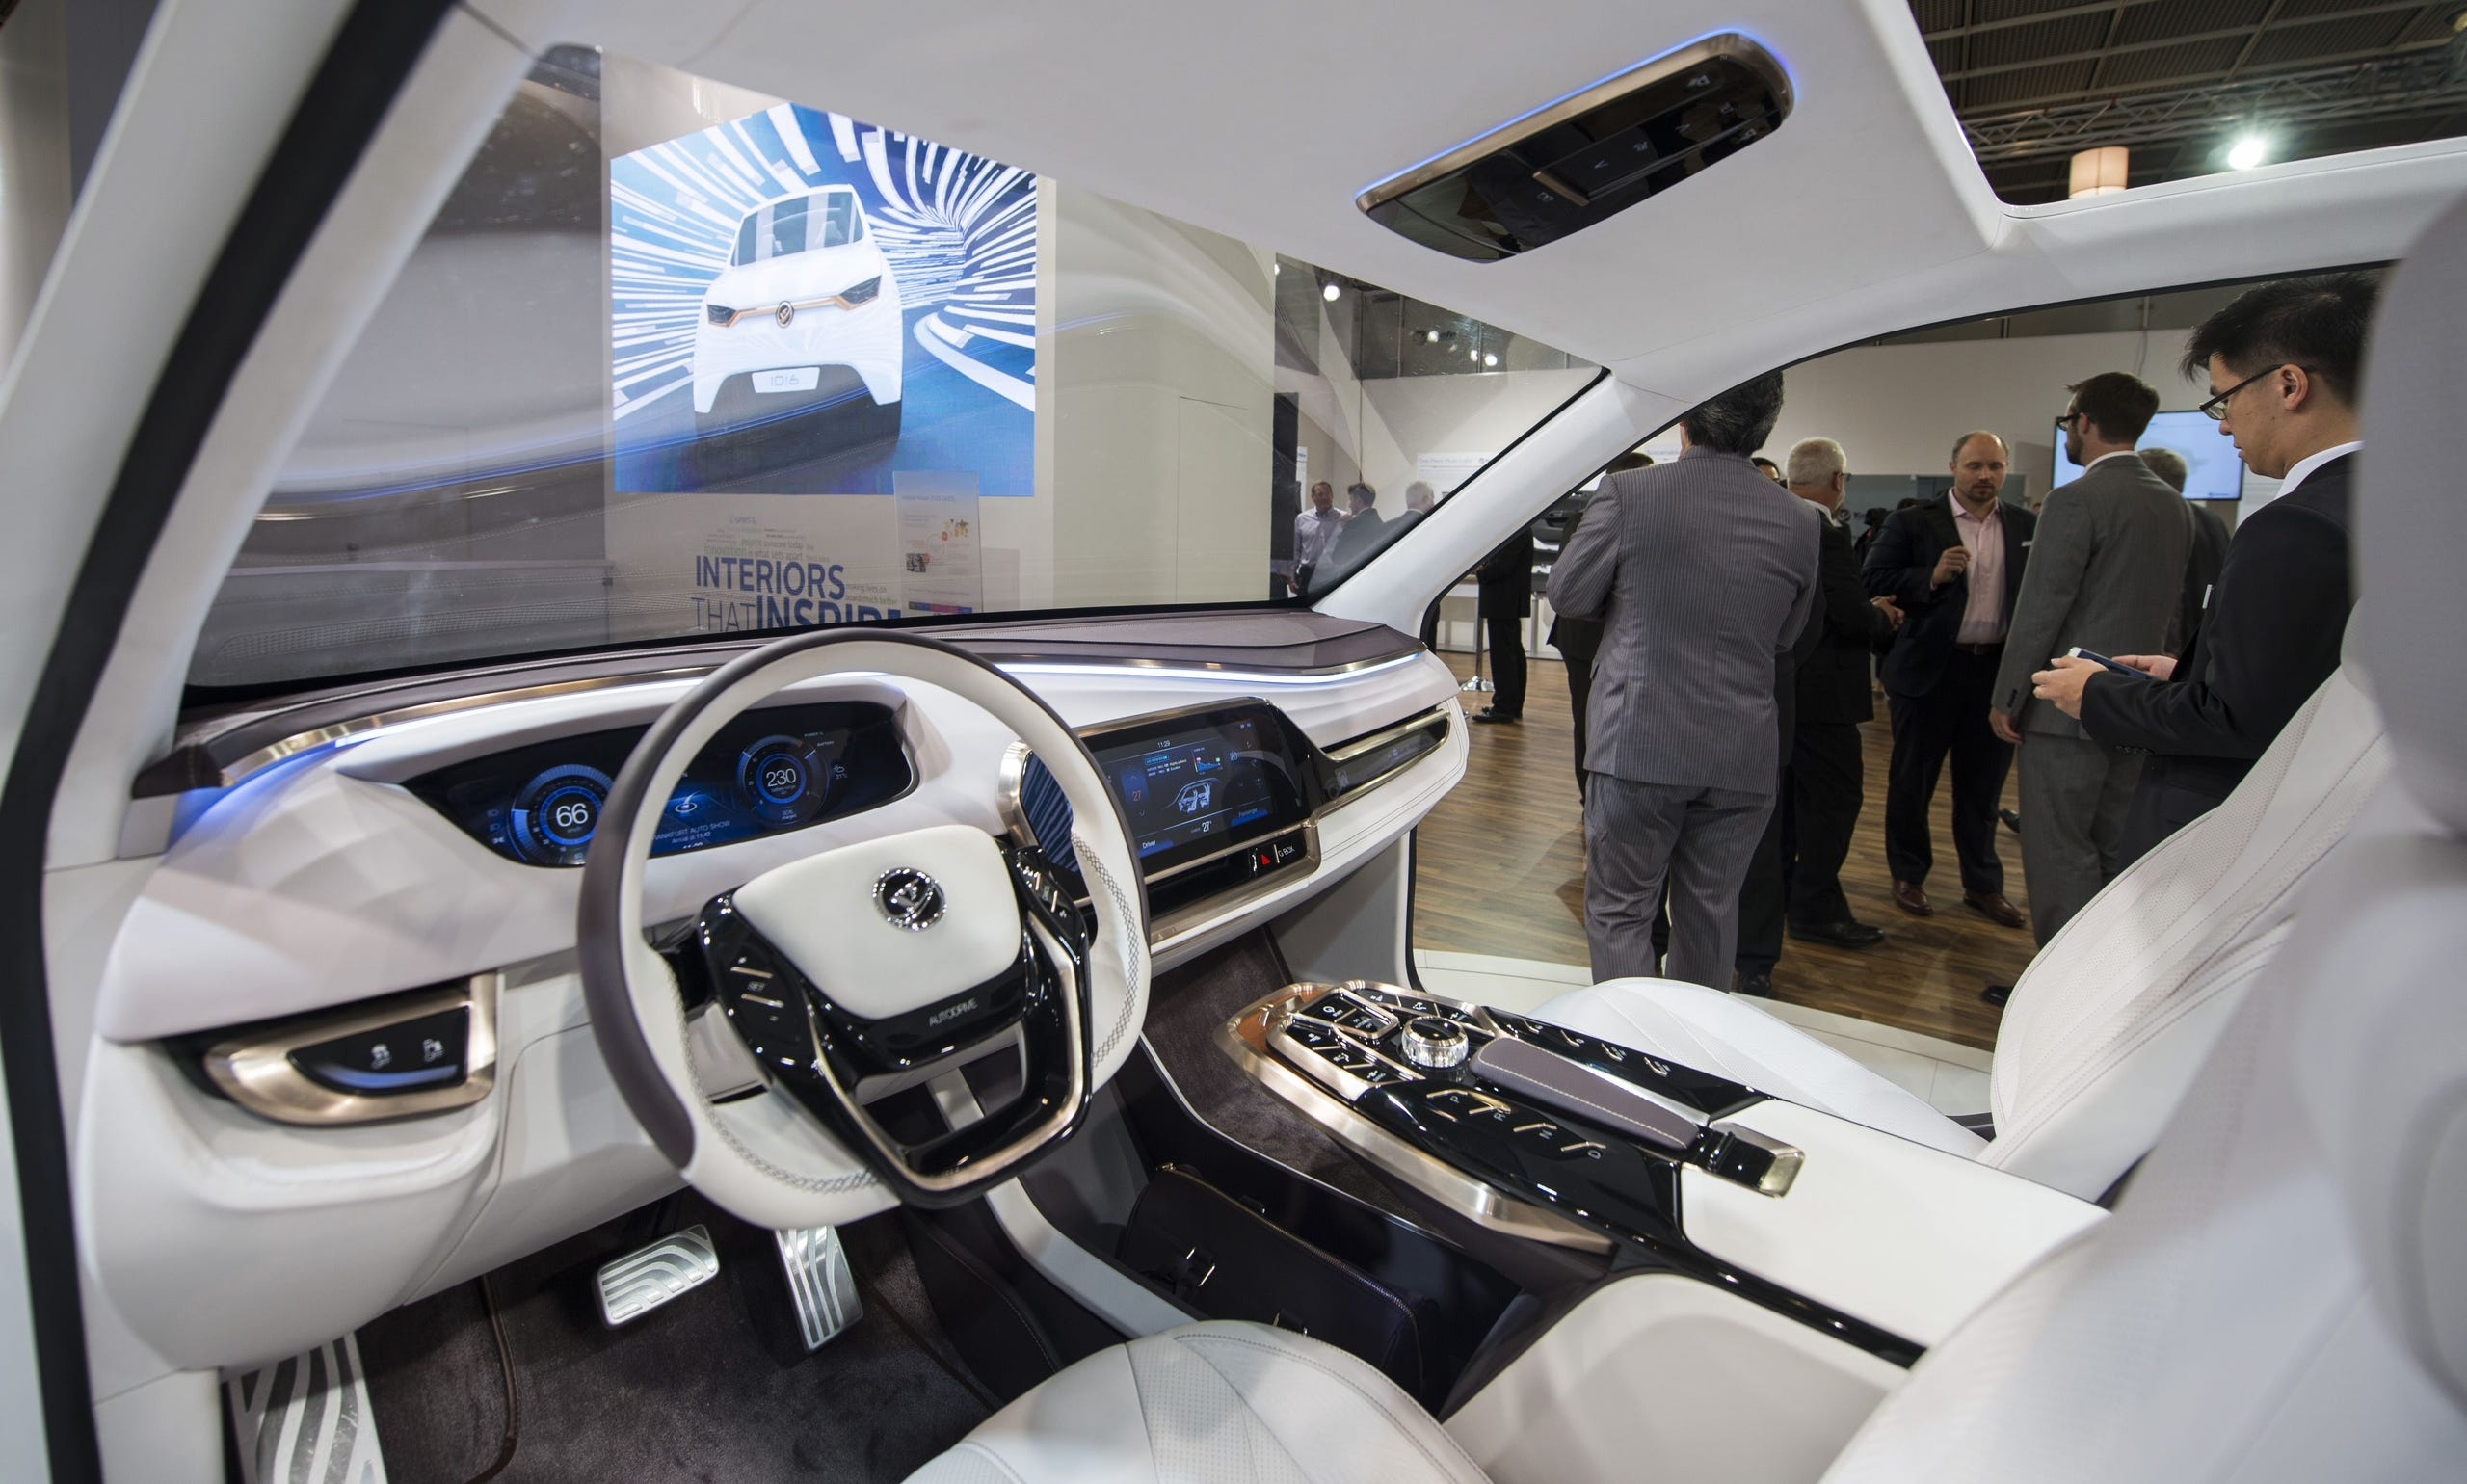 Yanfeng Automotive Interiors displays an autonomous concept car with a retracting steering wheel and seats rotating towards each other for an easier conversation during a press day of the 66th IAA auto show in Frankfurt am Main, western Germany, on Sept. 16, 2015.